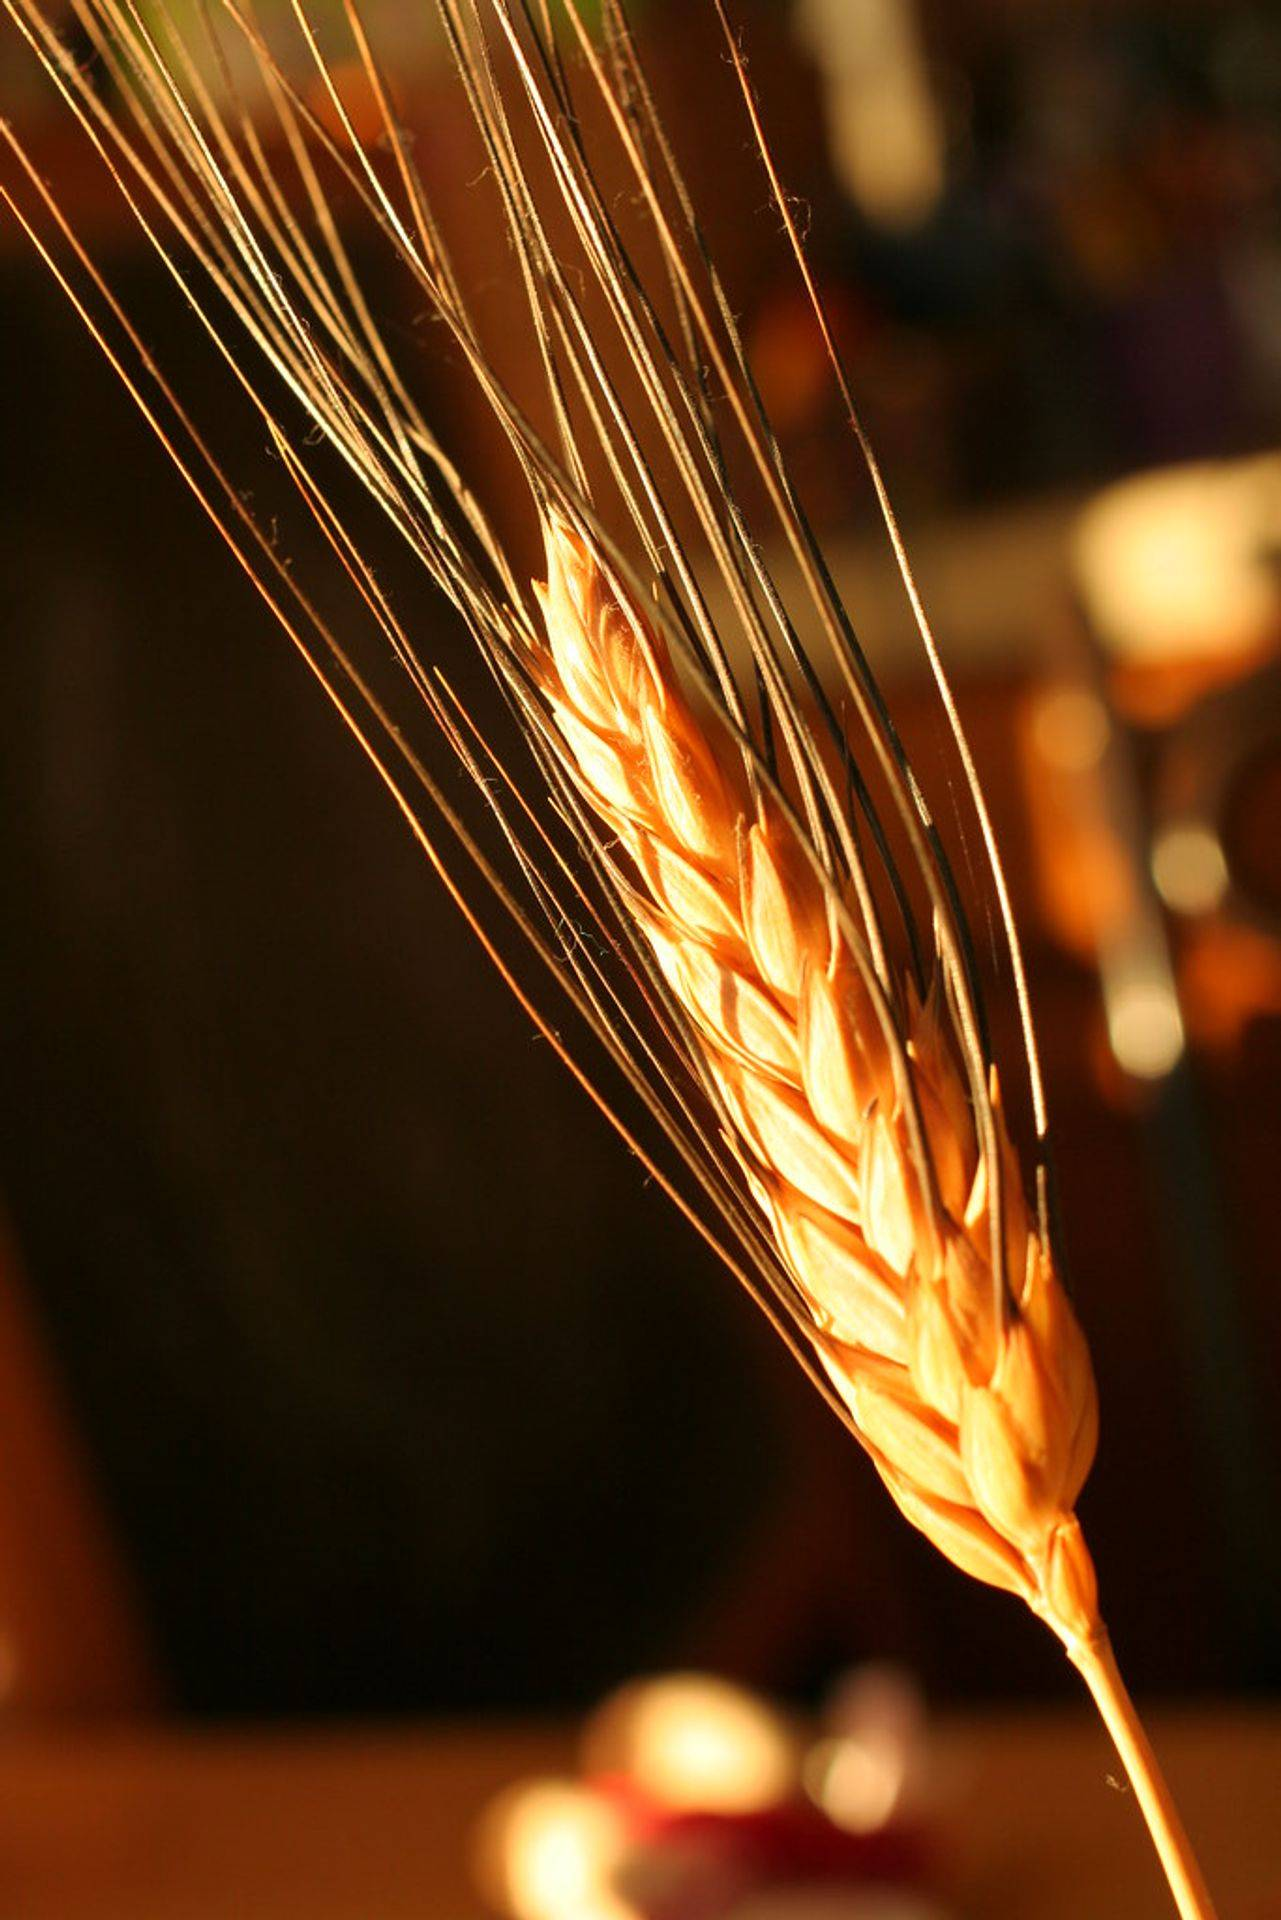 Wheat Sheaf plant